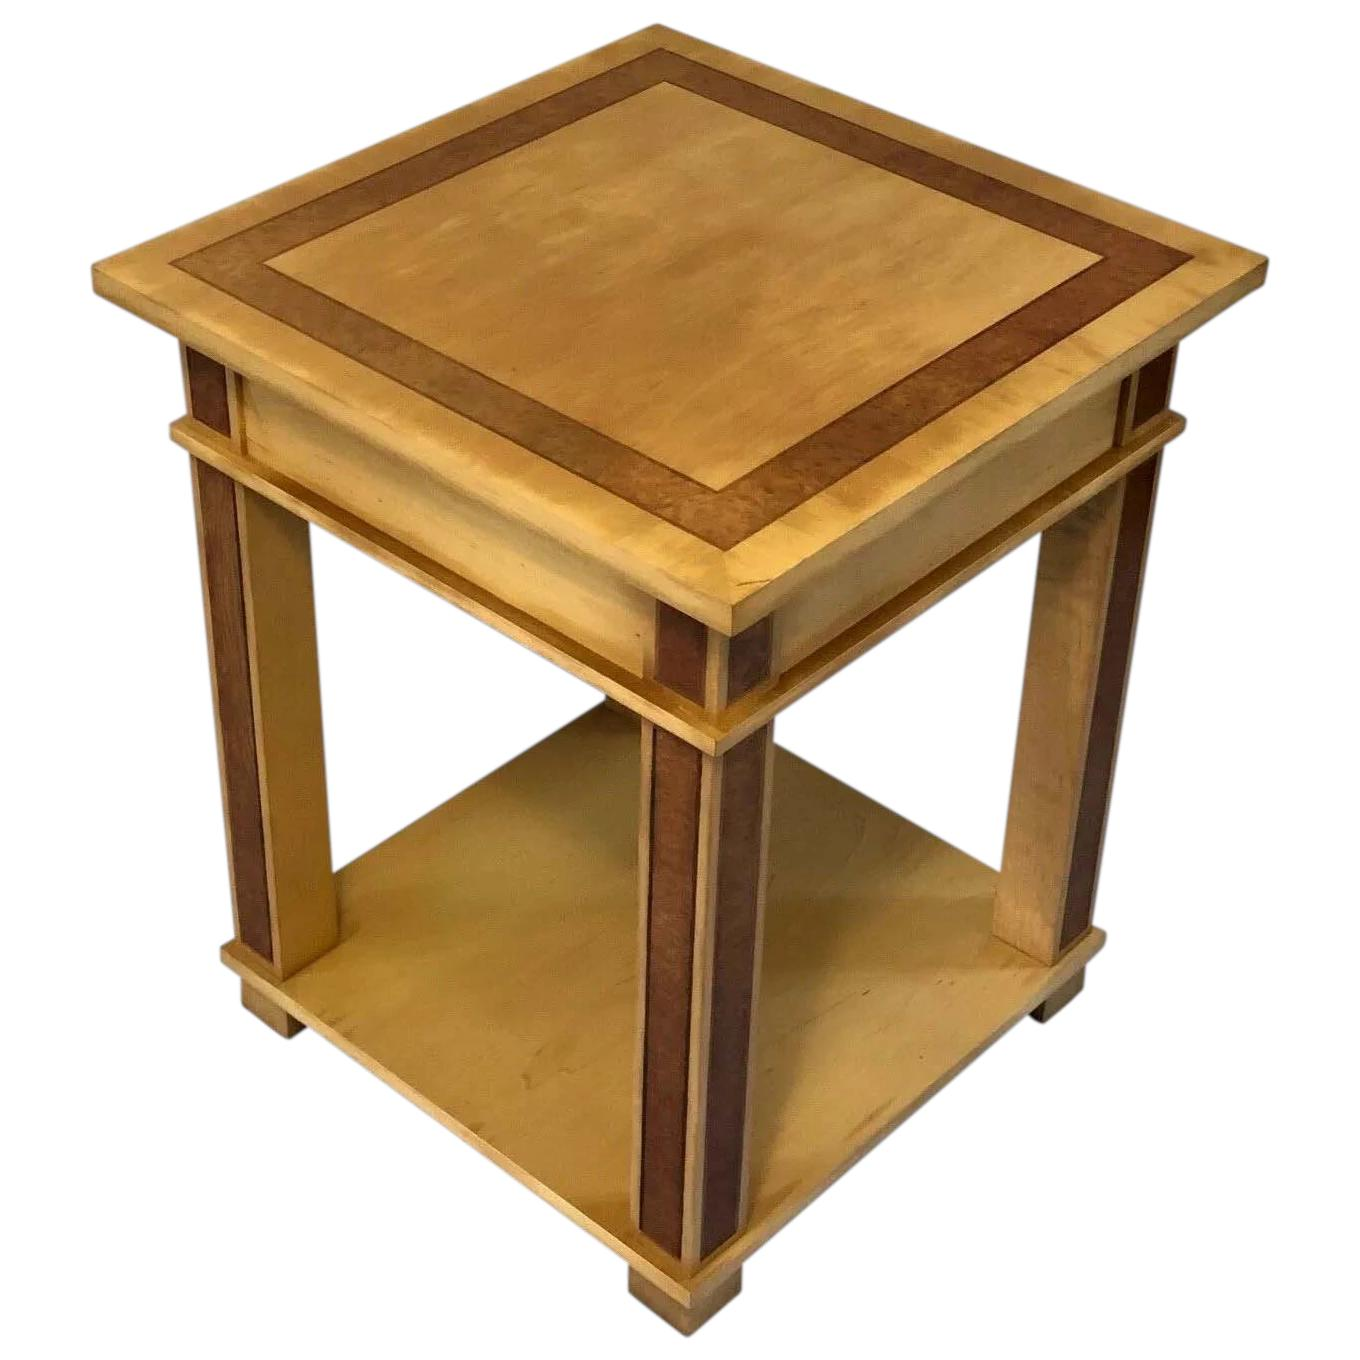 Art Deco Style 20th Century French Blonde Wood Side Table 445762f La326793 Loveantiques Com